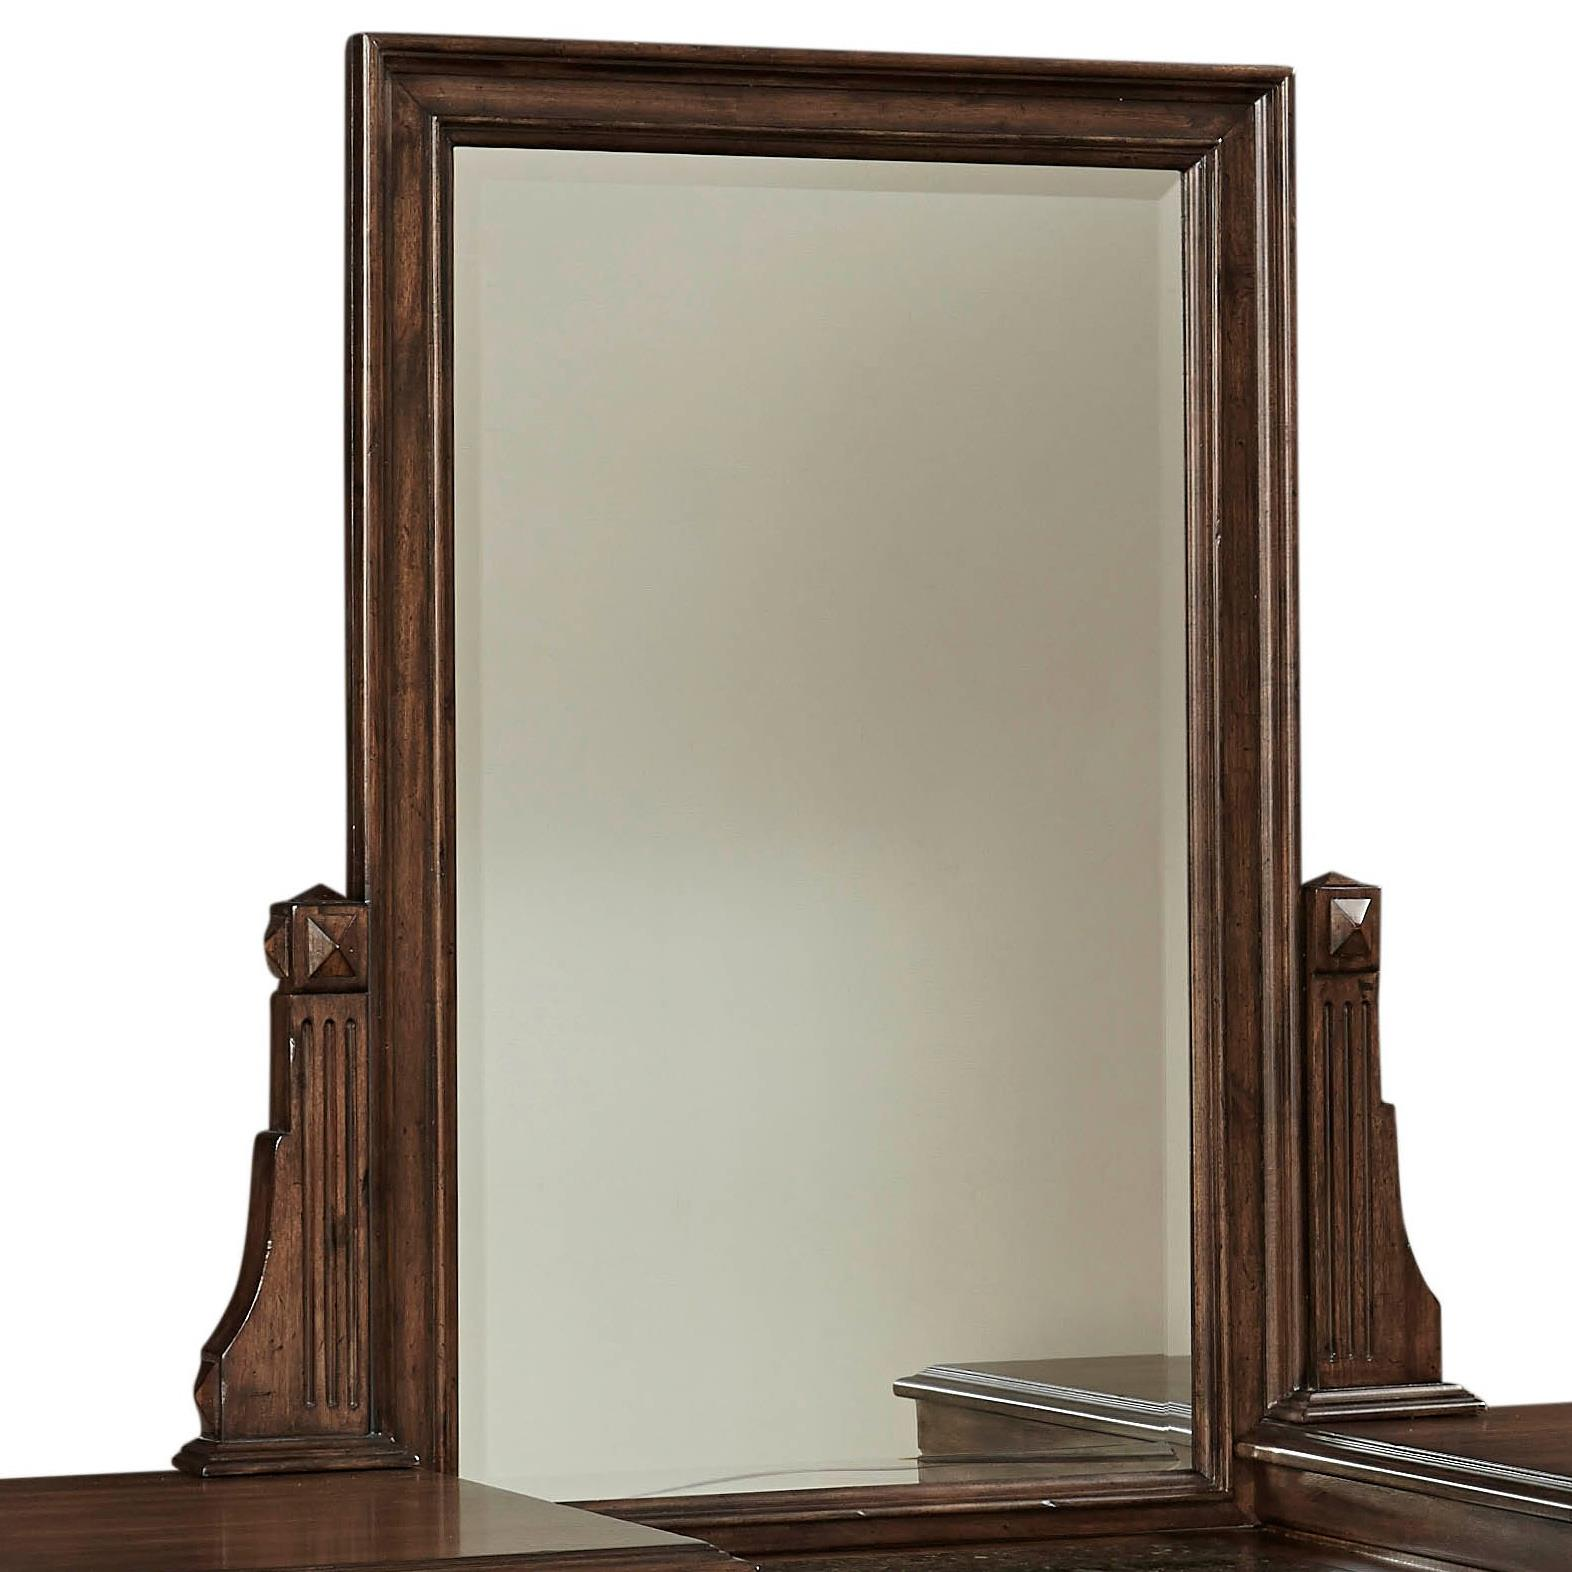 Broyhill Furniture Lyla Vanity Mirror - Item Number: 4912-221